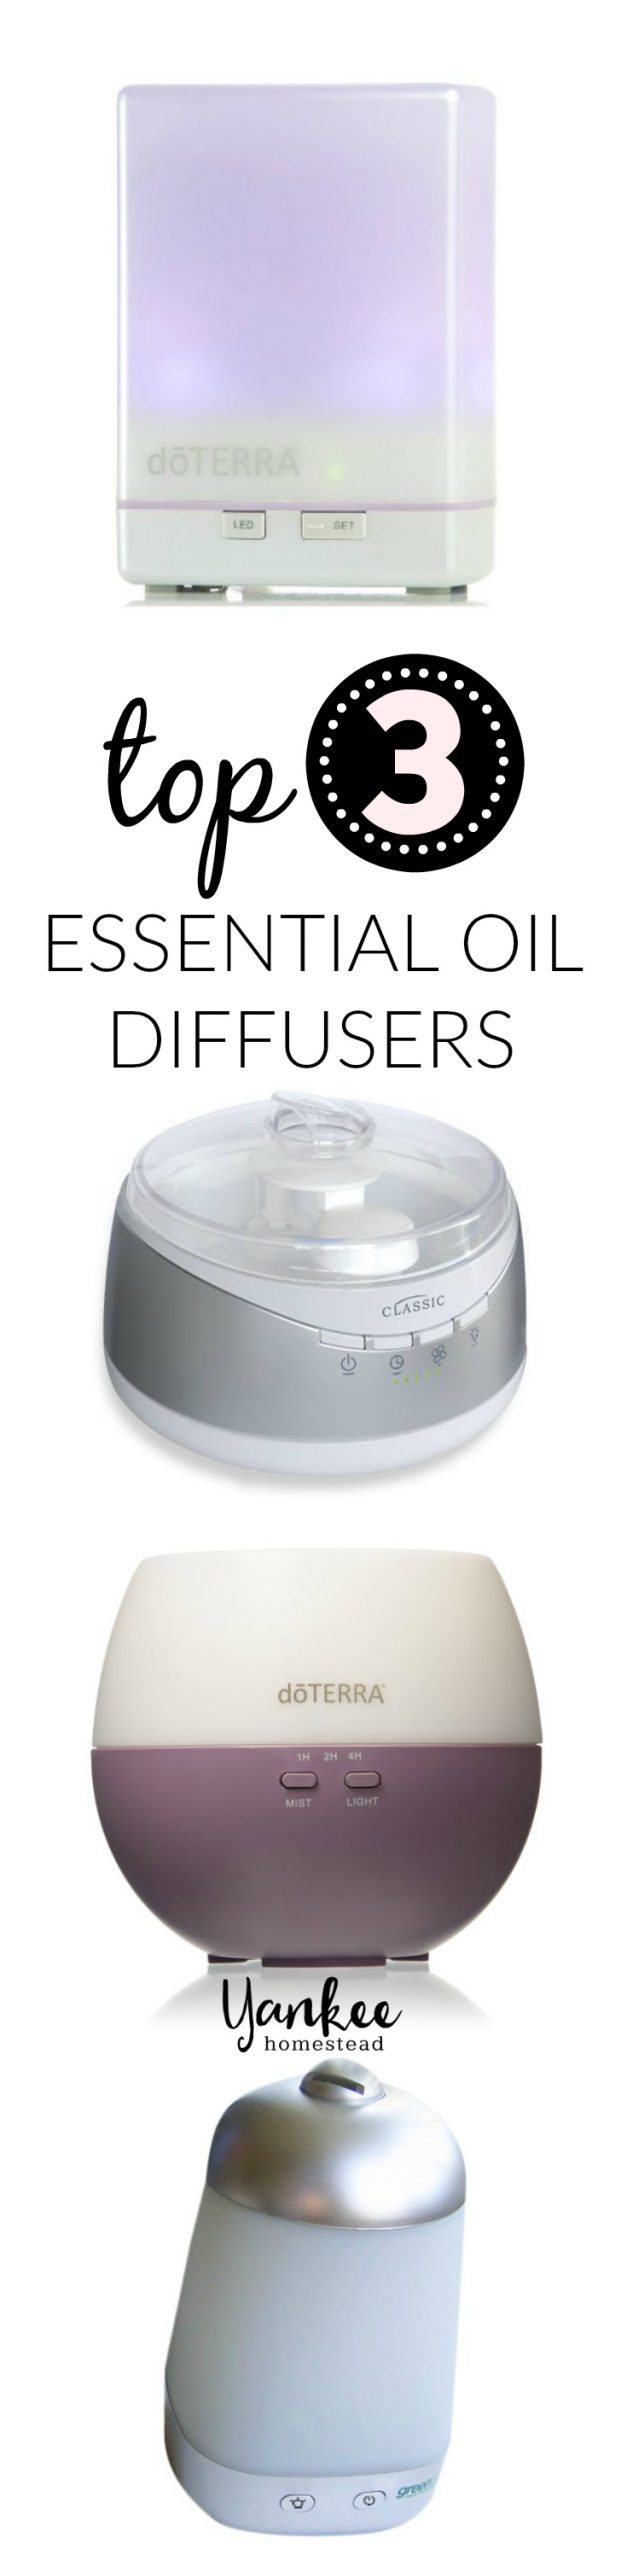 Top 3 Essential Oil Diffusers | Looking for a good essential oil diffuser? Here are my top three, plus two more. Why do you even need a diffuser? Click through to find out!